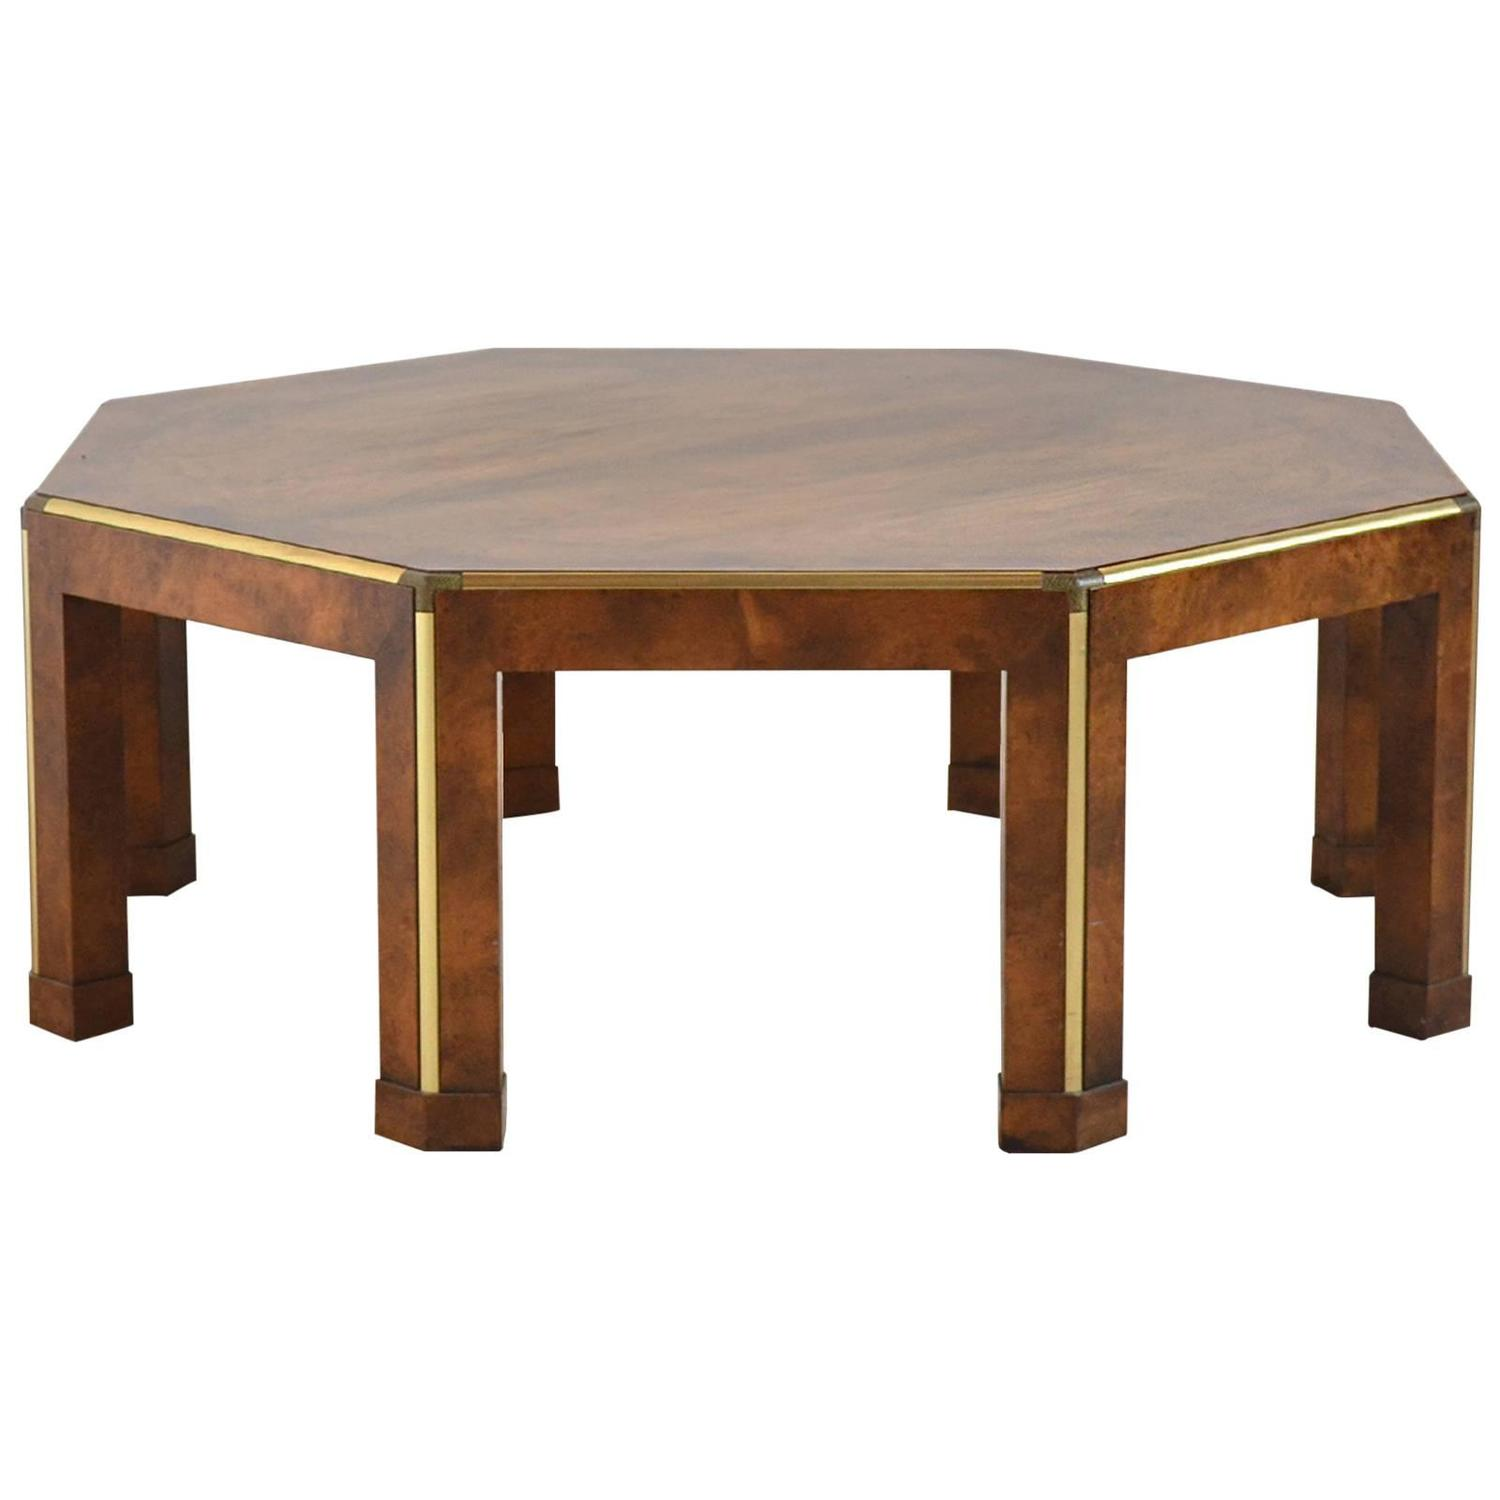 Baker Octagonal Burled Walnut Coffee Table At 1stdibs